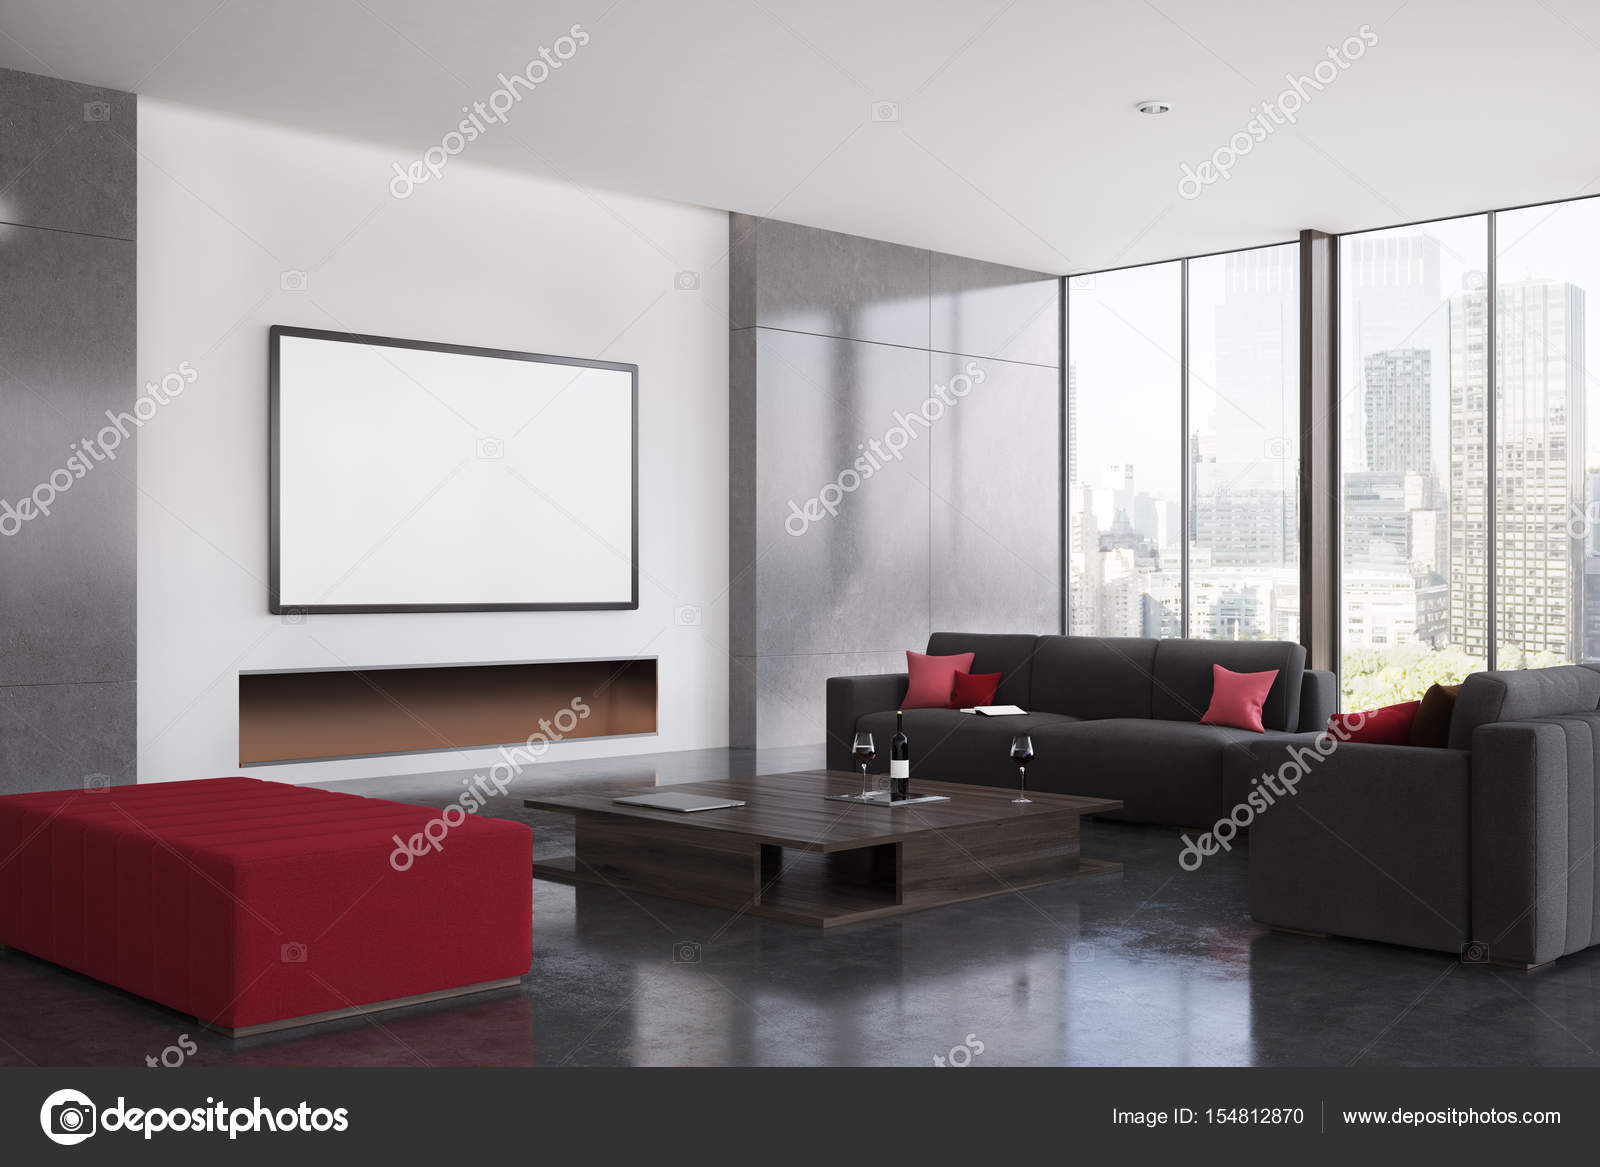 Red white black living room ideas | Red and black living ...